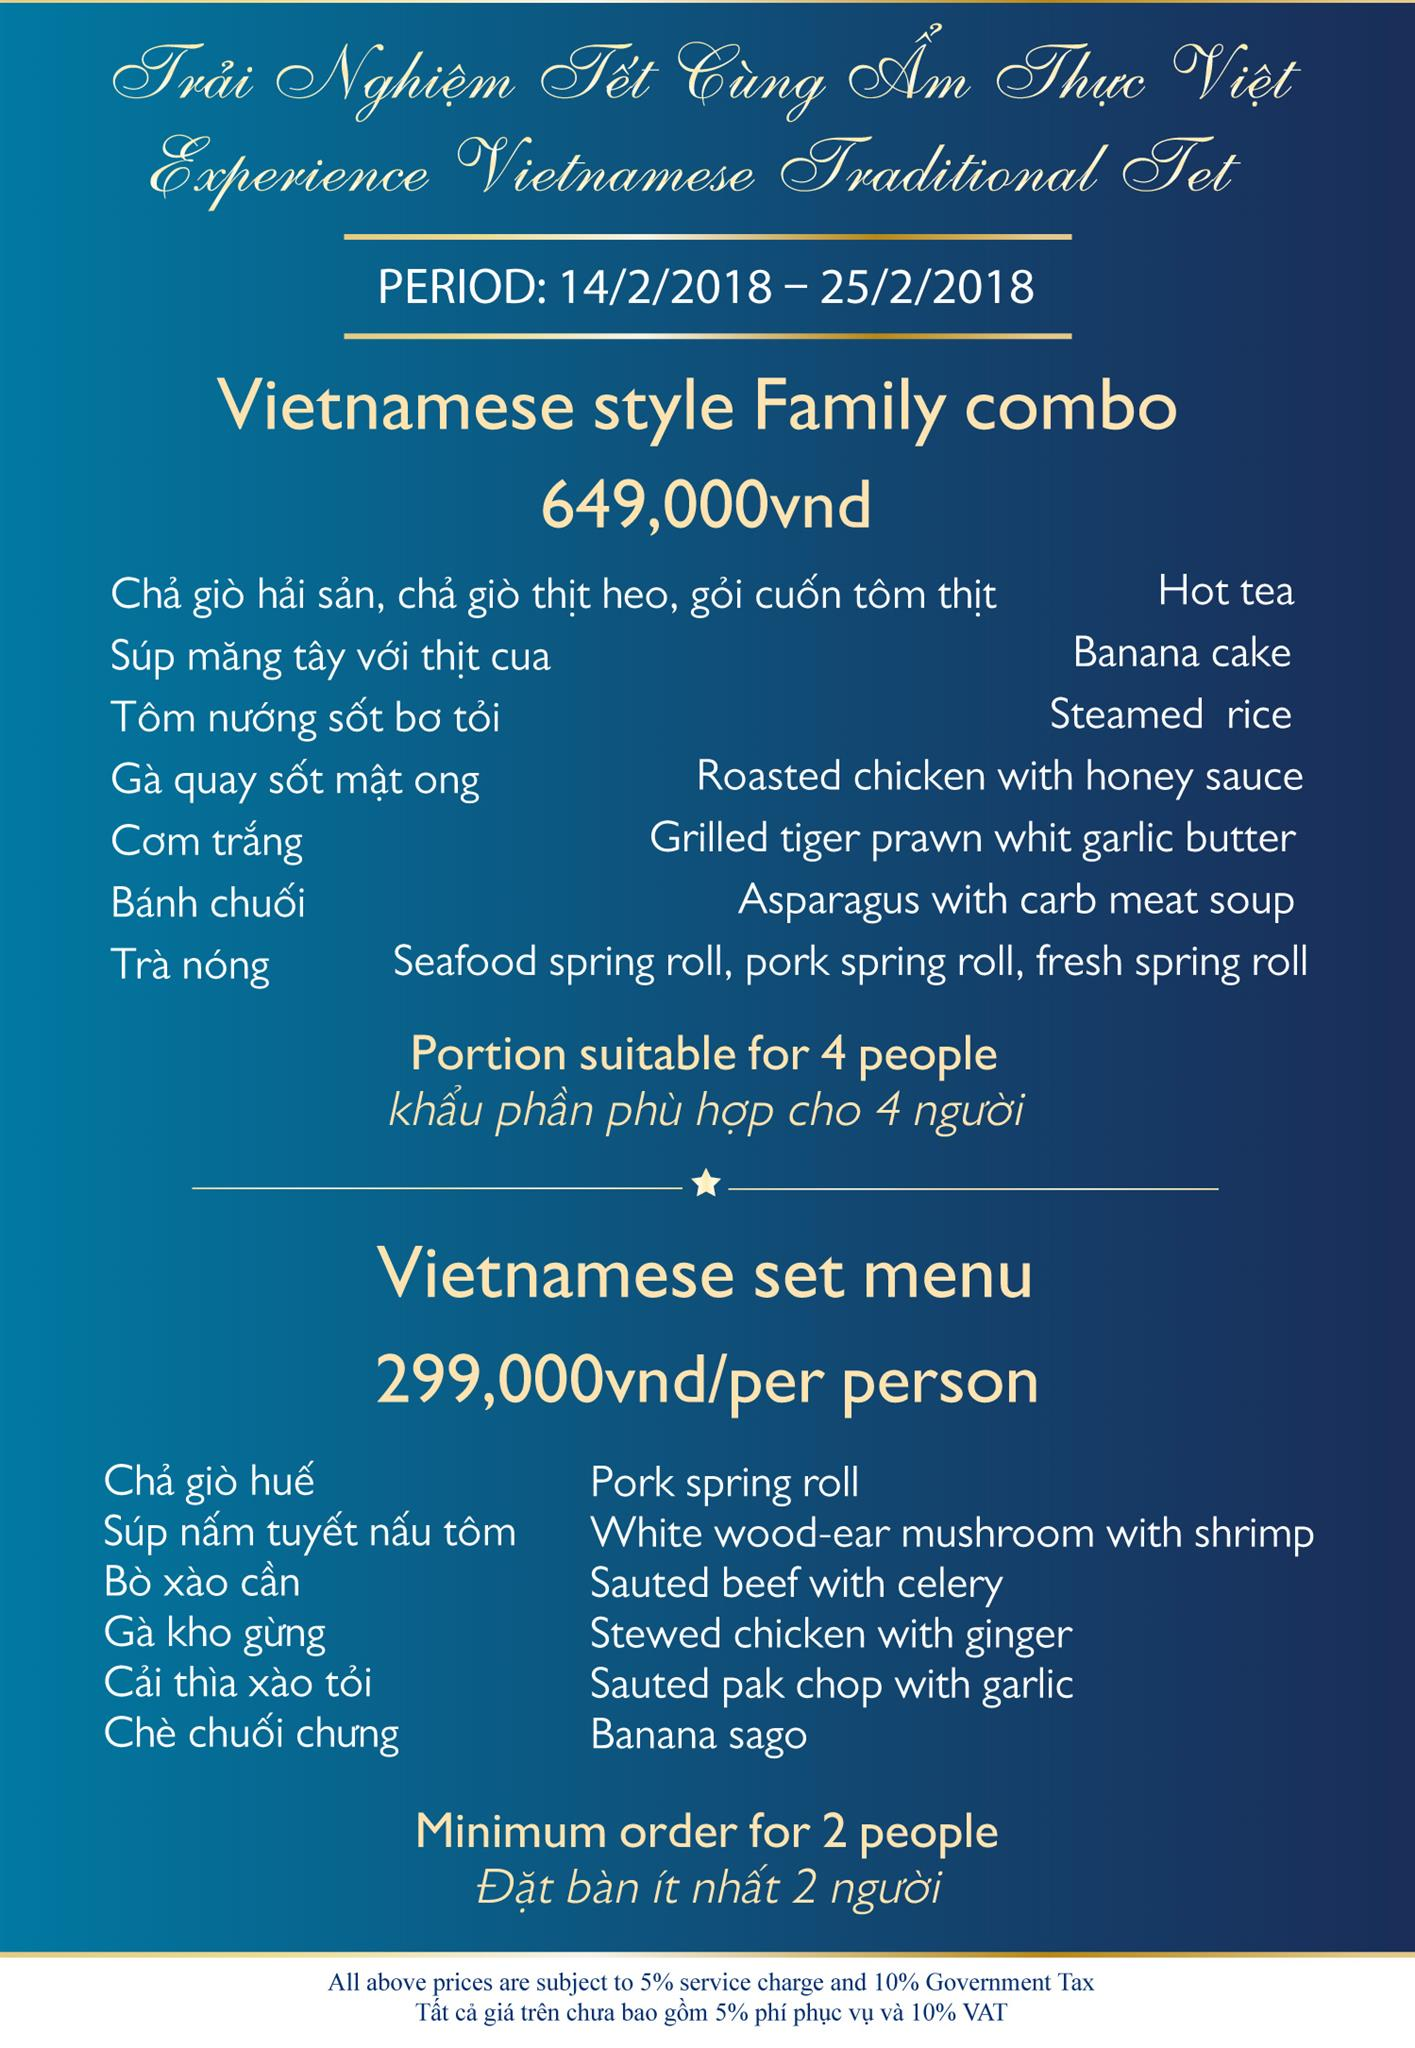 Experience Vietnamese Traditional Tet at Diamond